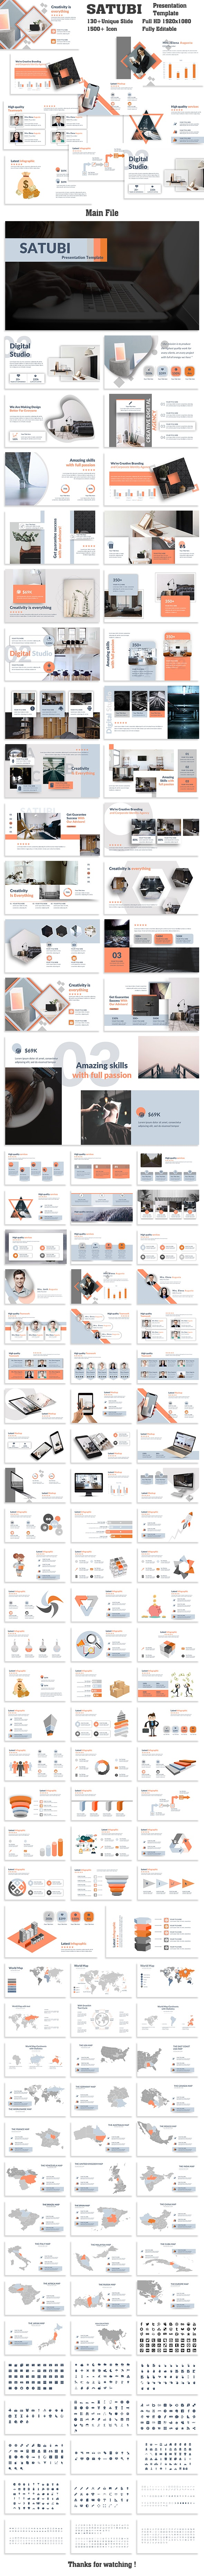 Satubi Creative PowerPoint Template - Creative PowerPoint Templates